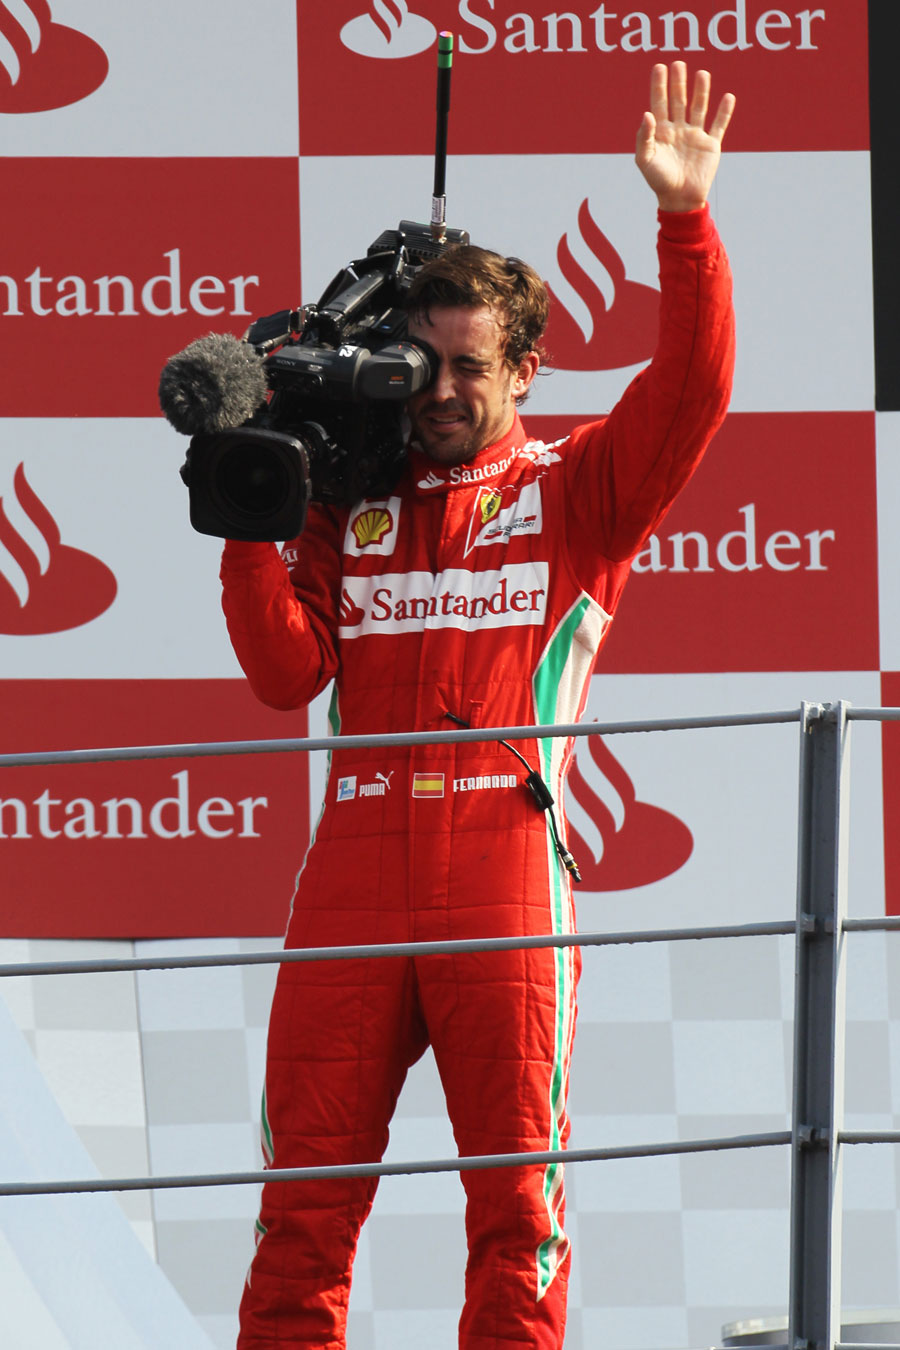 Fernando Alonso plays cameraman on the podium